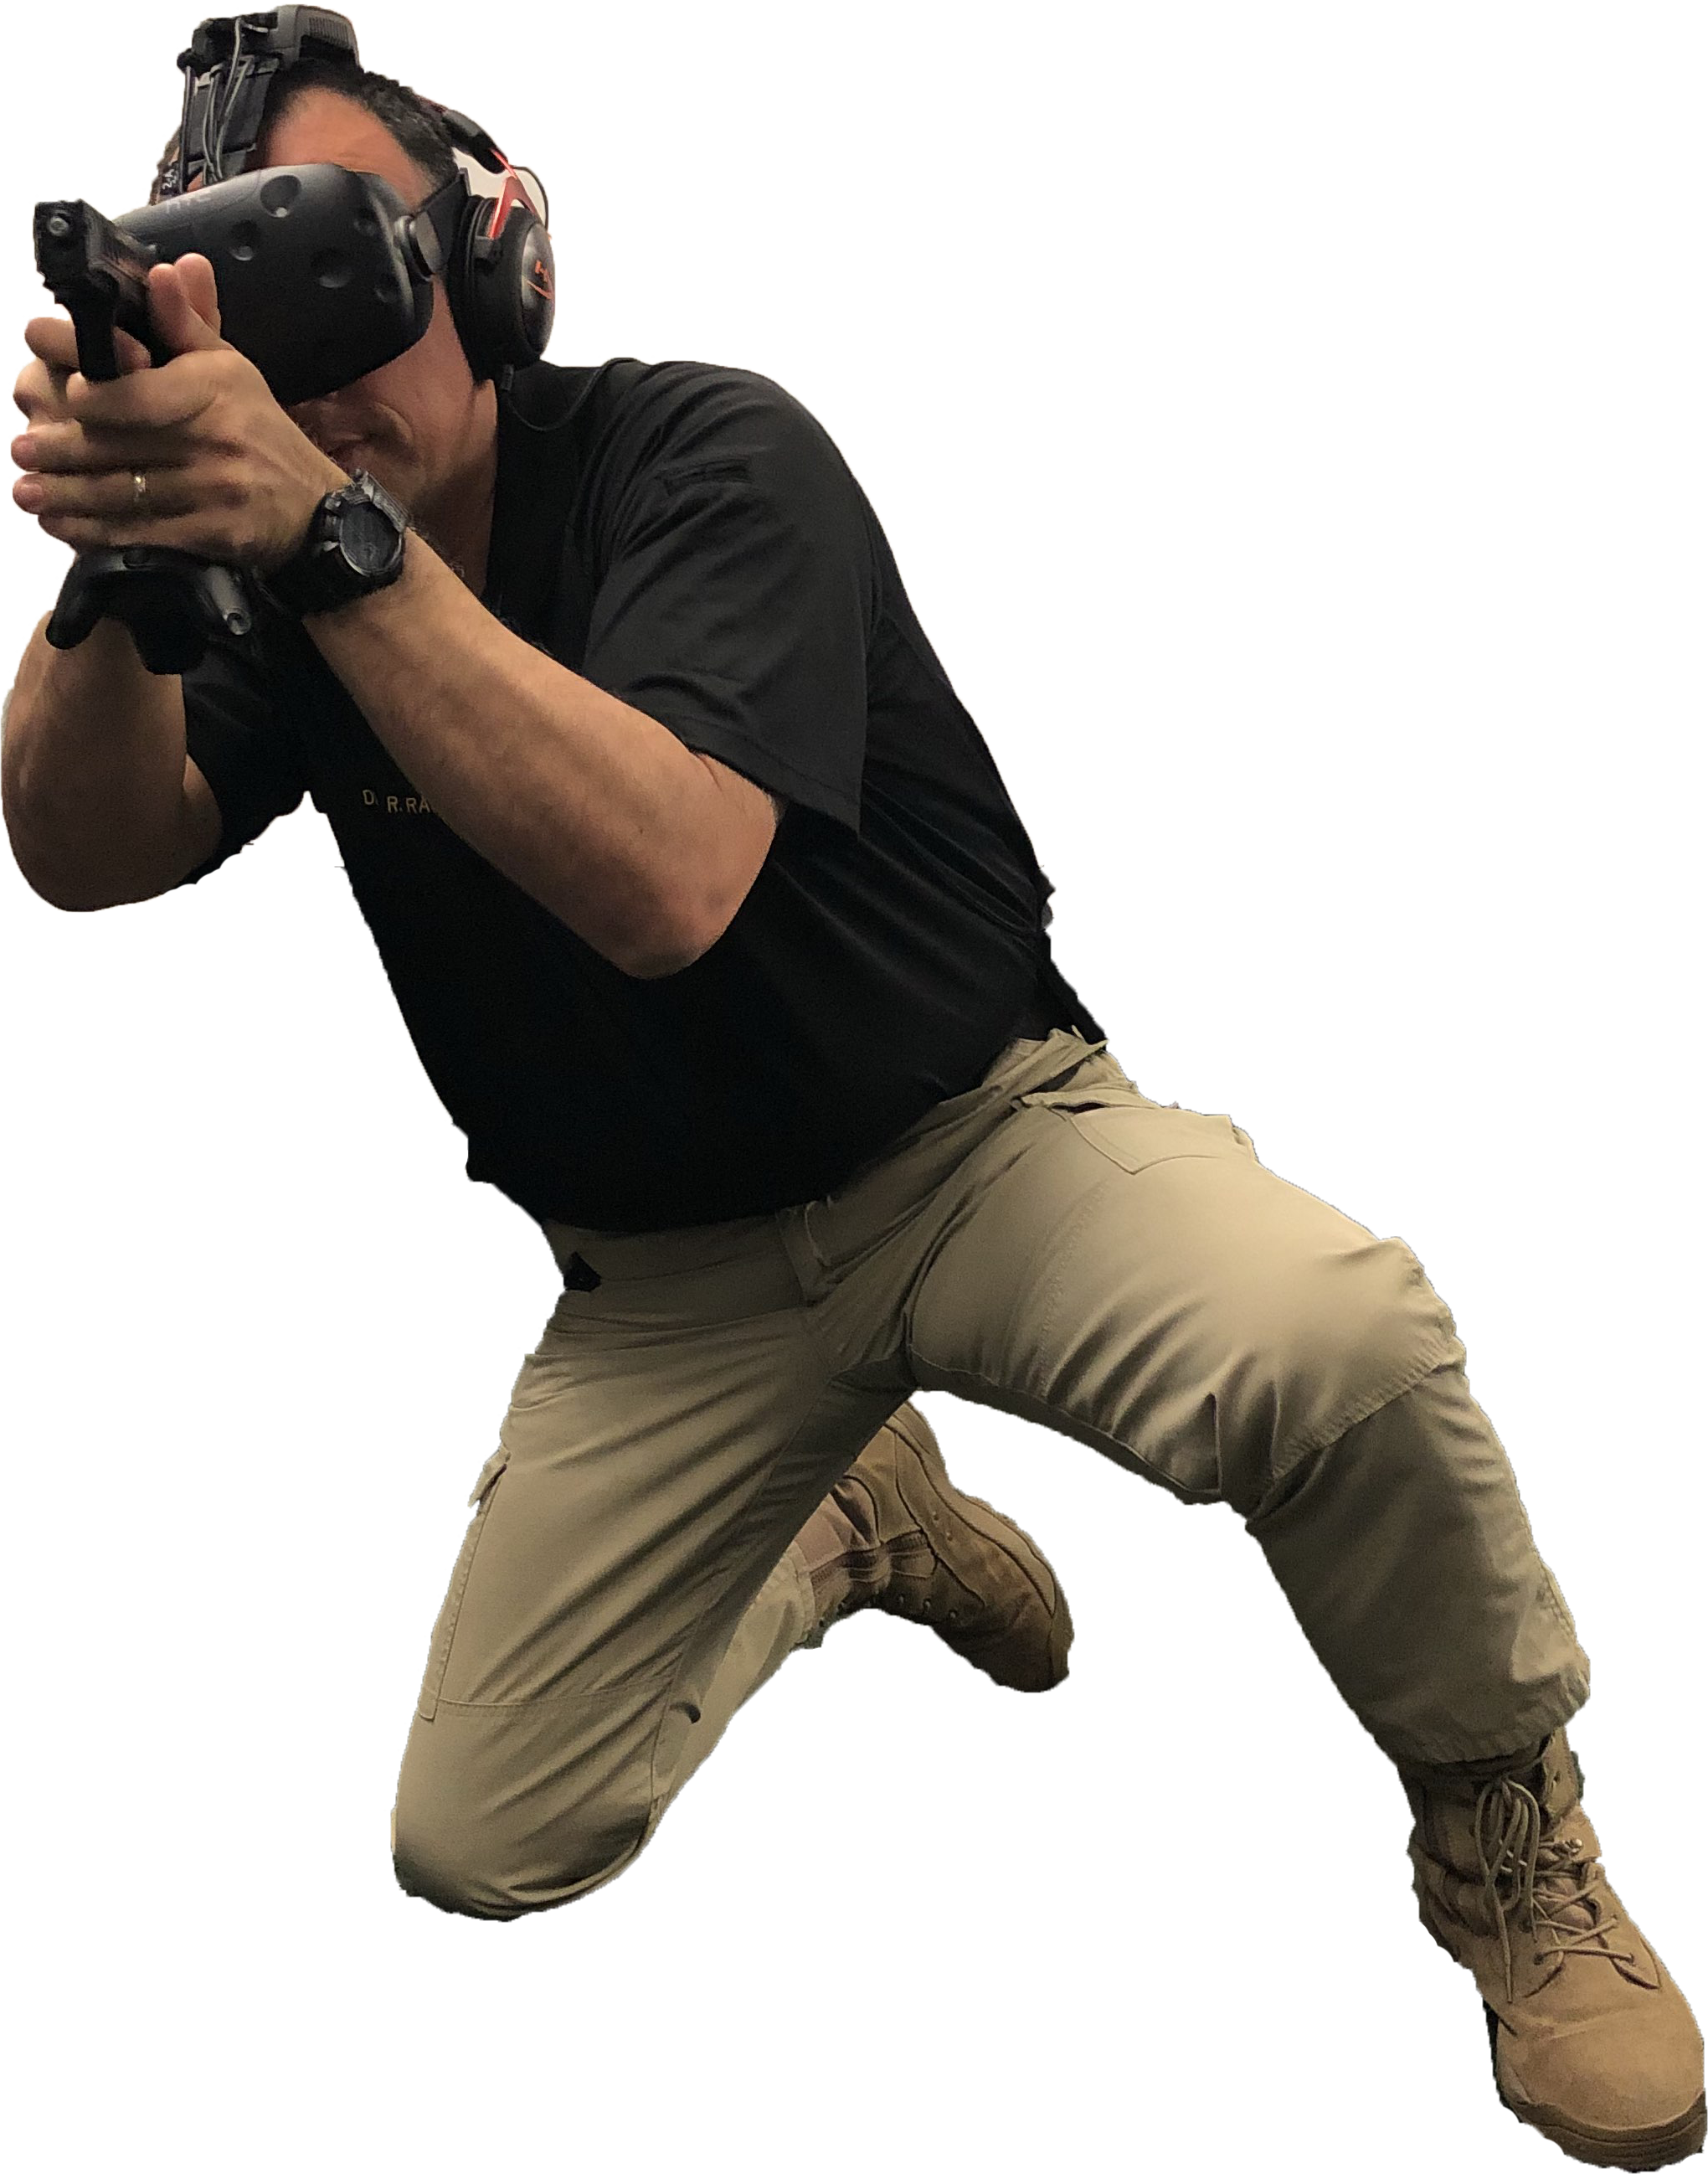 Sheriff training in virtual reality